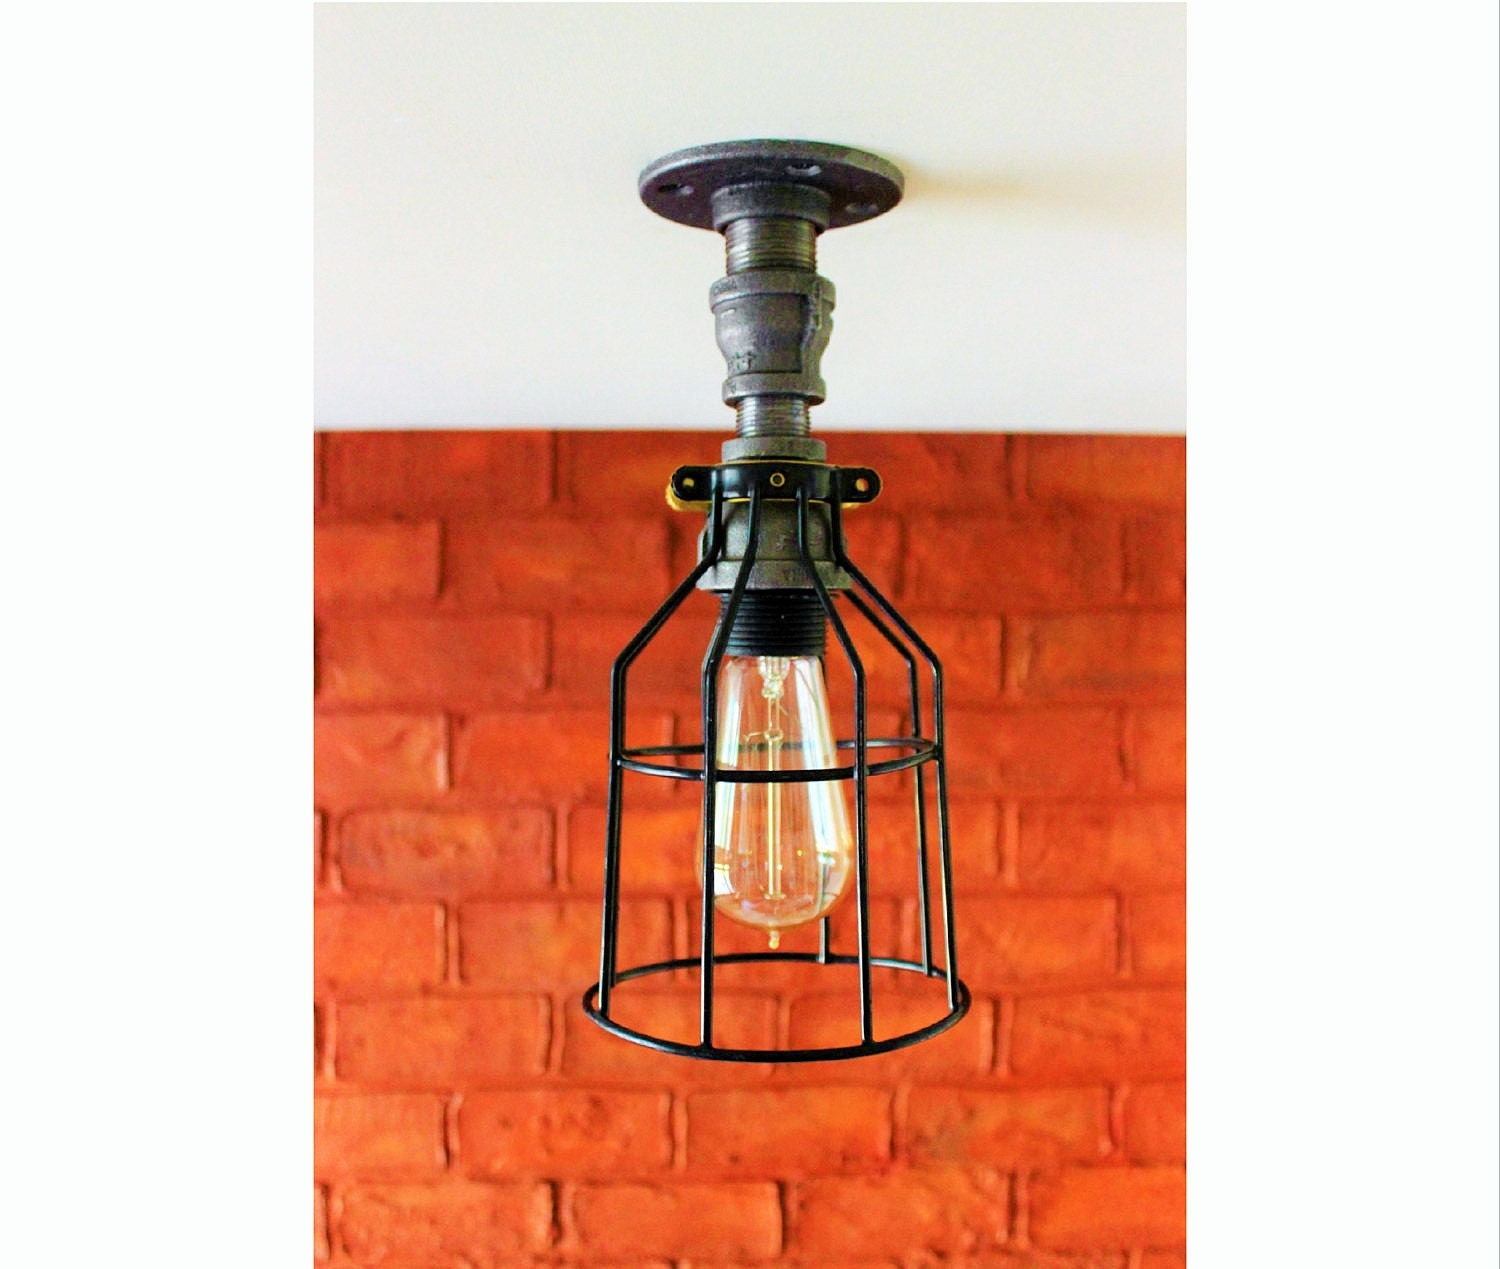 Ceiling Light Industrial Lighting Pipe Farmhouse Mason Jar